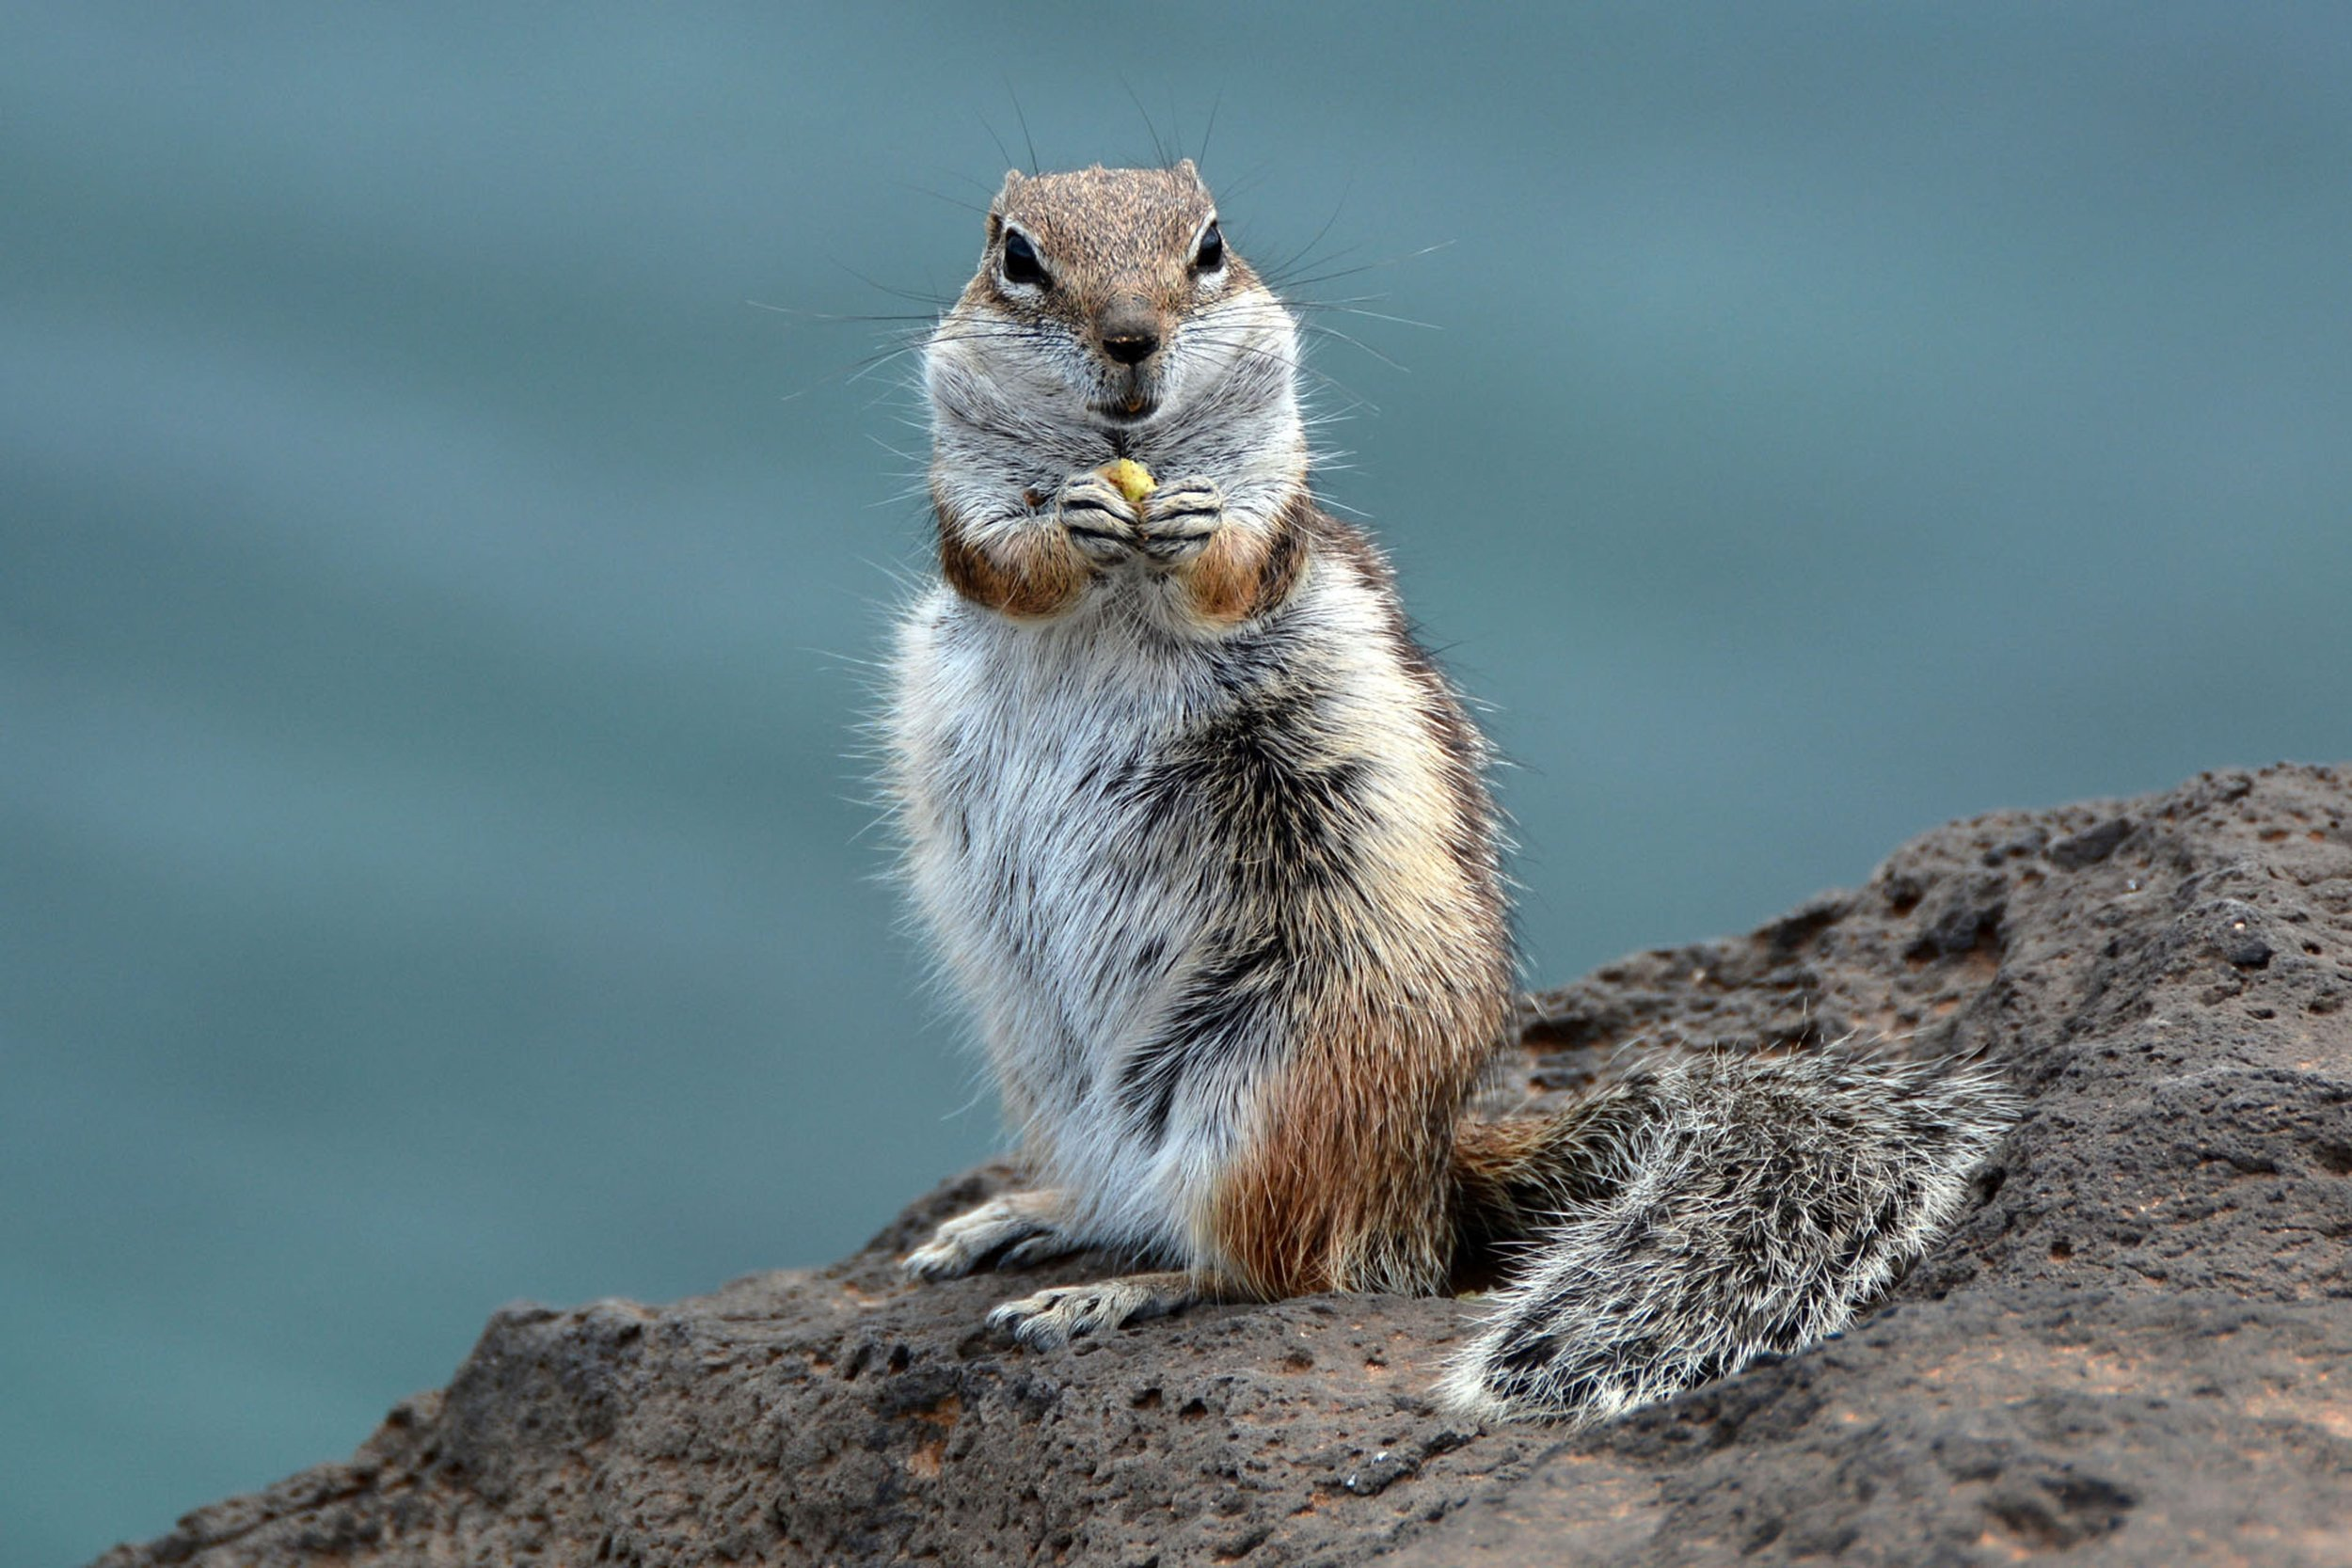 Figure 2 :Hungry Squirrel